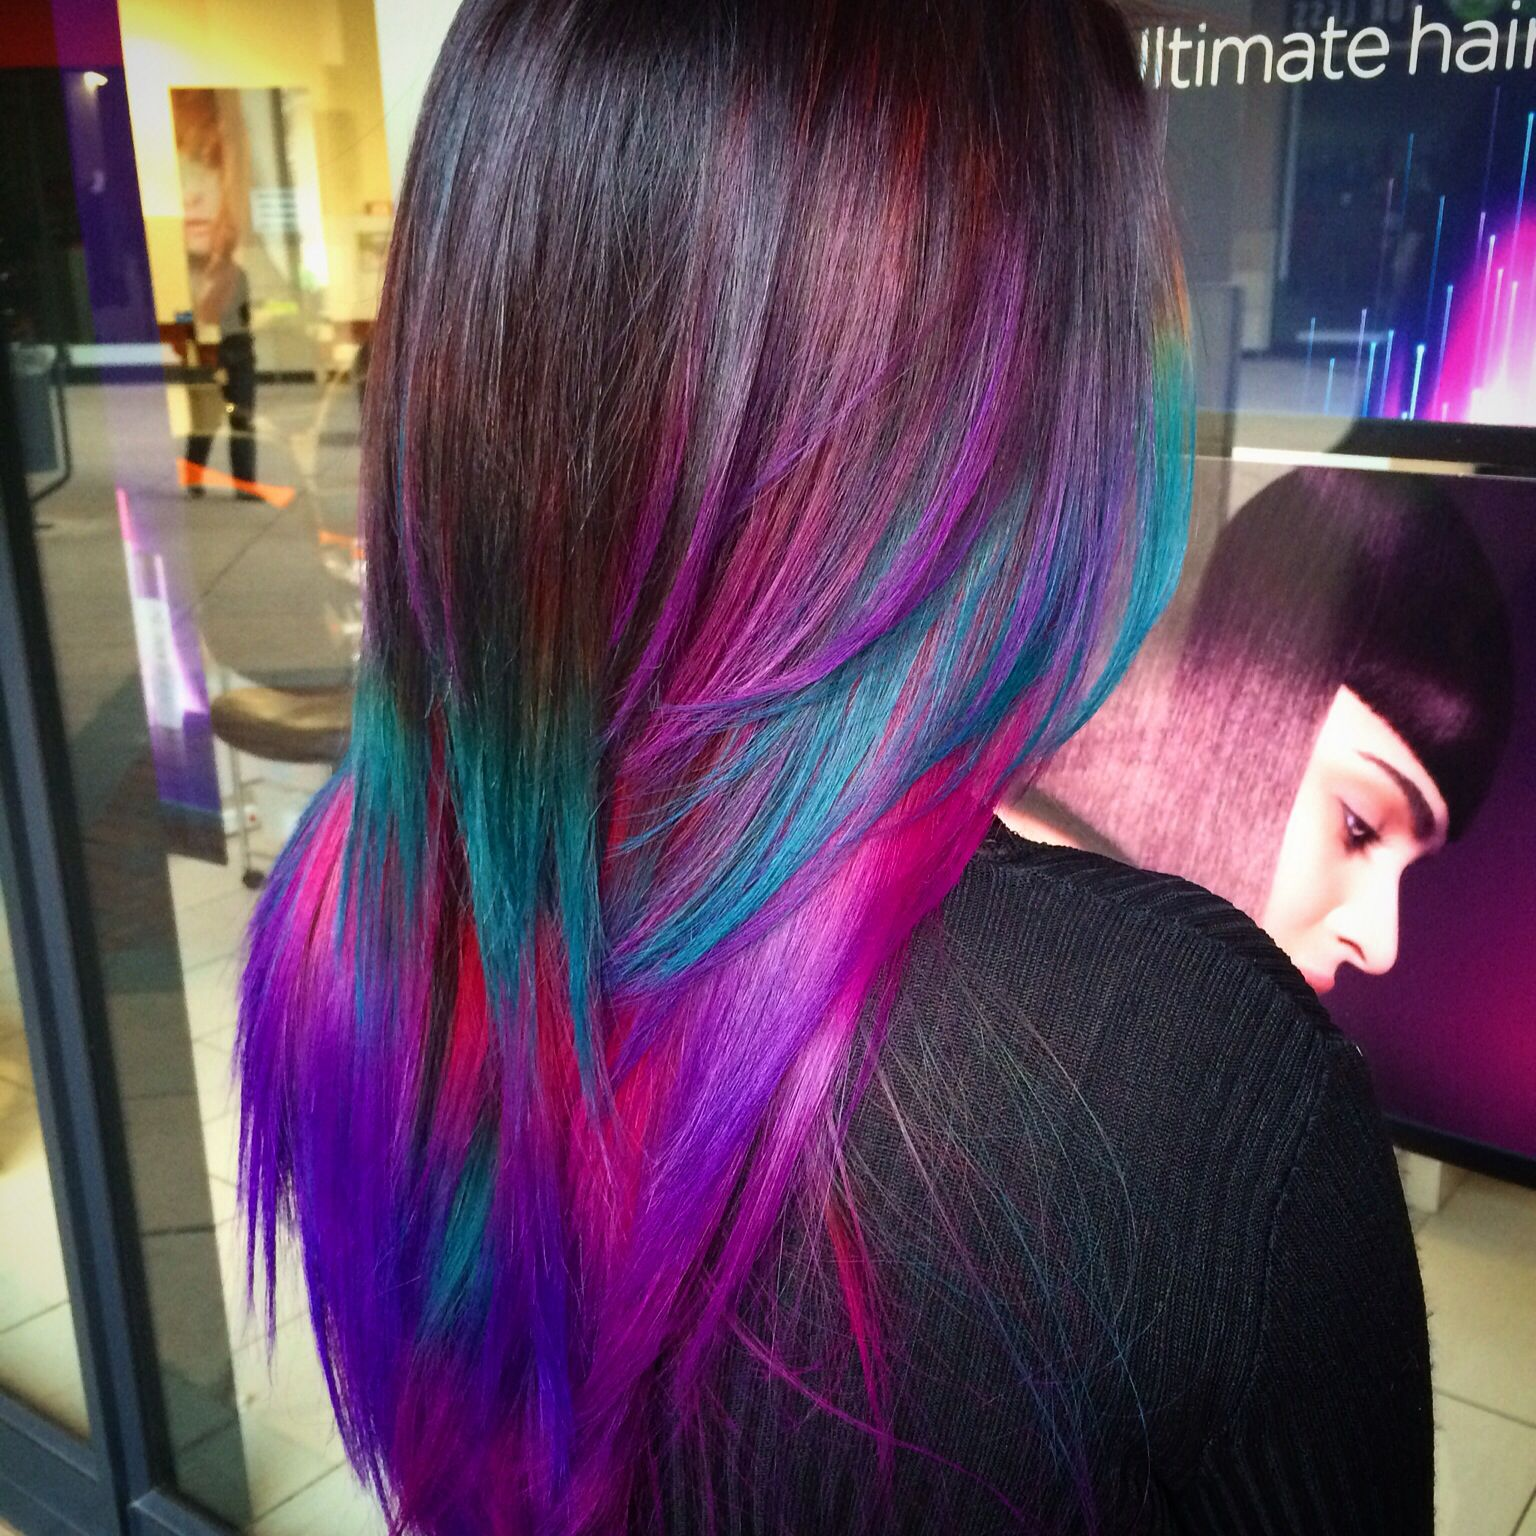 Ombre Hair With Amazing Colour Combination Of Purple, Turquoise And